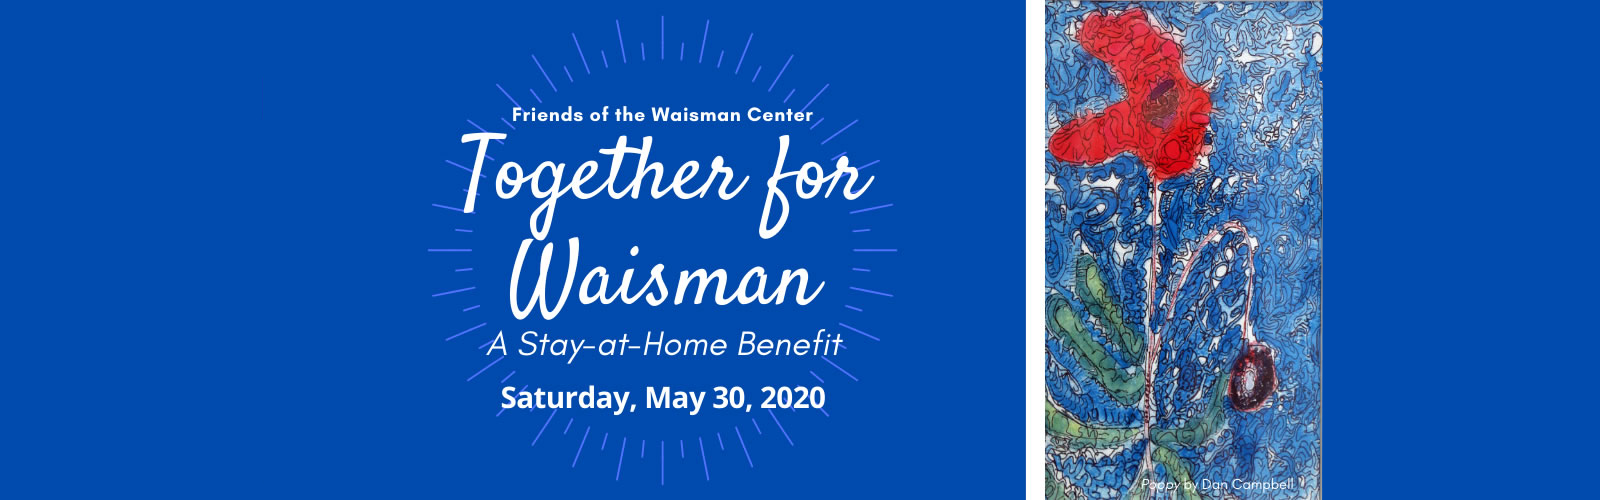 Together for Waisman Benefit